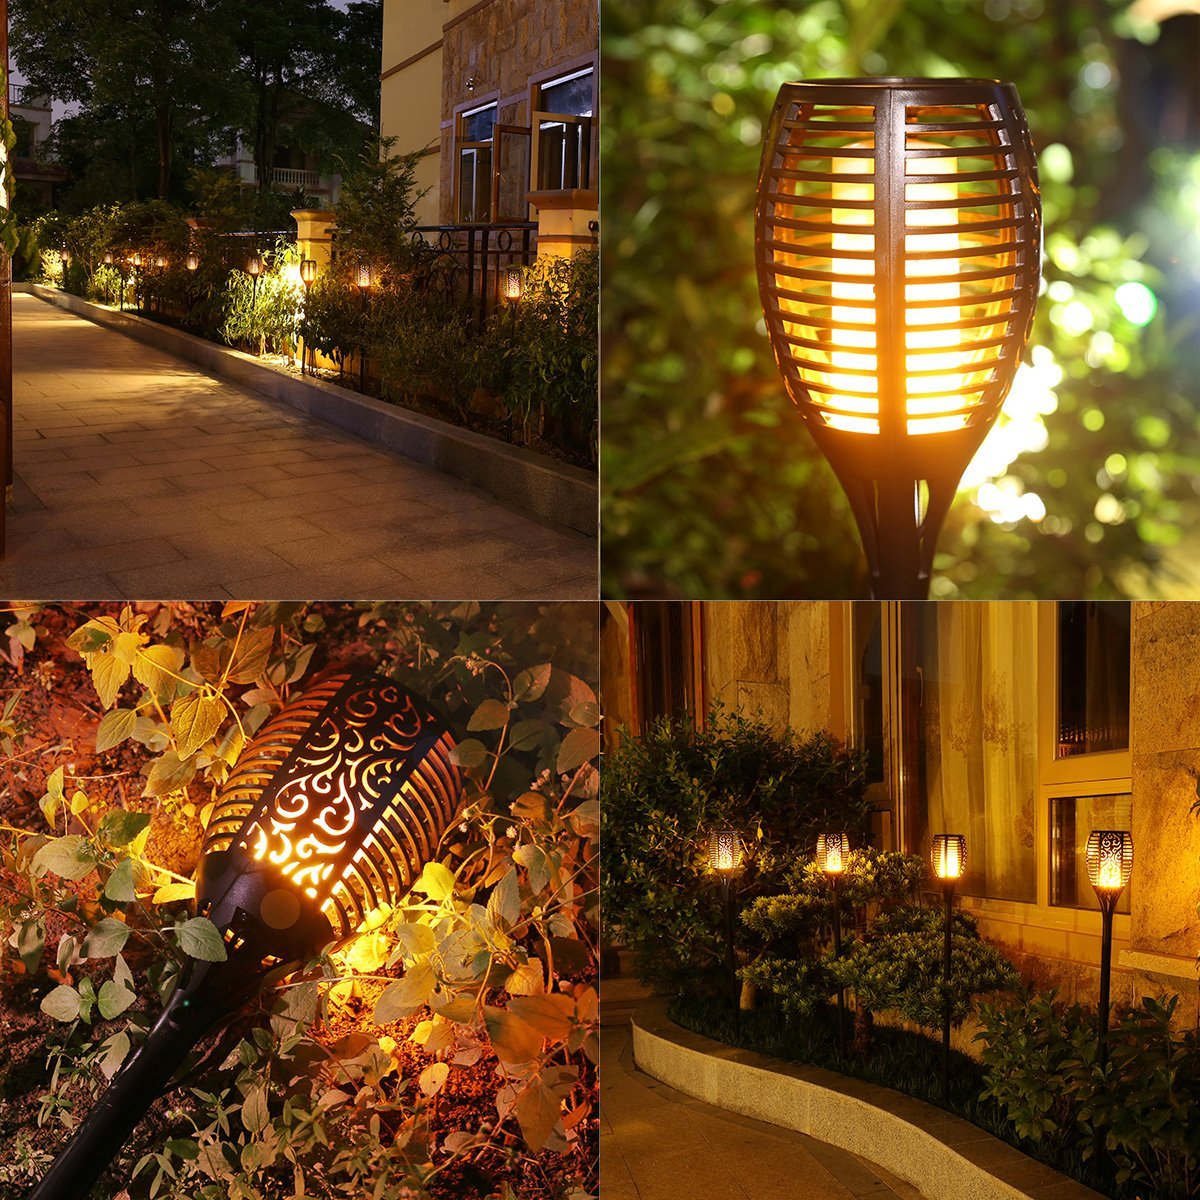 Solar outdoor landscape flame light